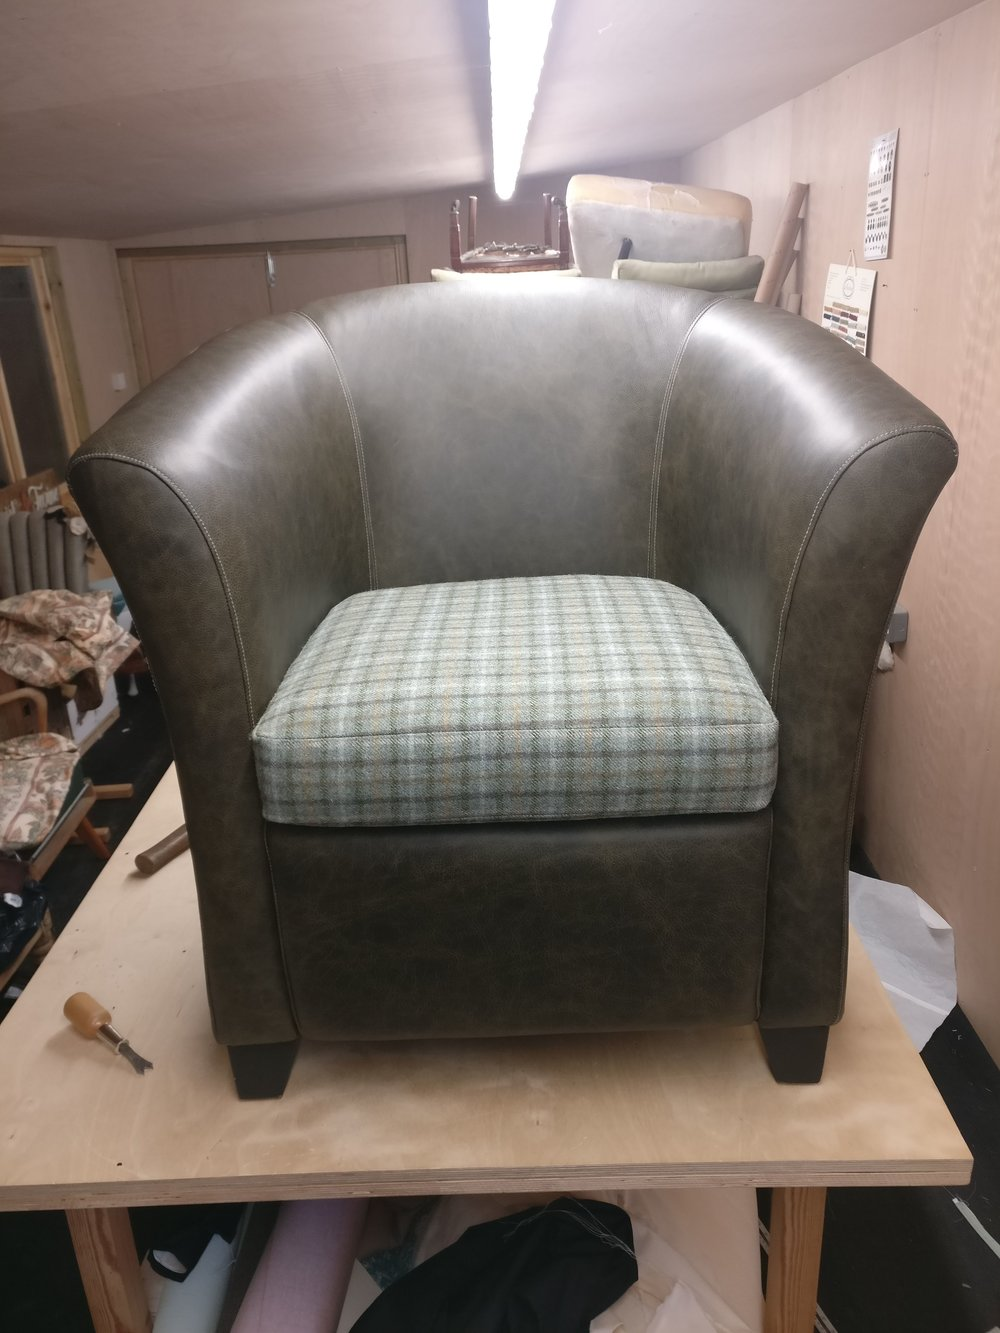 Grist & Twine Upholstery: Leather chair reupholstered in green with wool check cushion